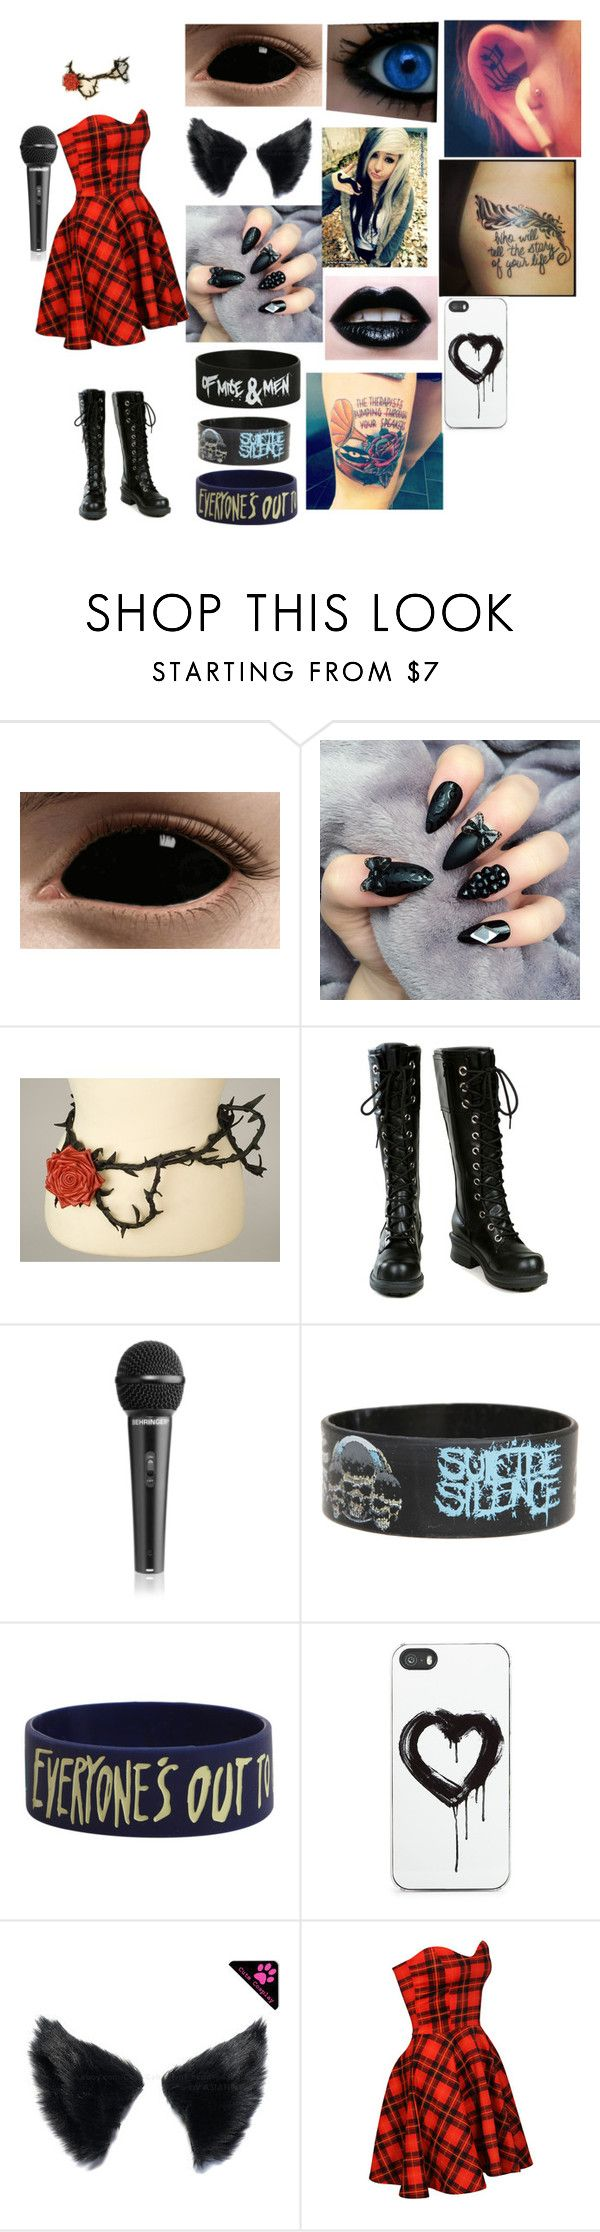 """Jasmine (screamer/singer)"" by aimee-whibley ❤ liked on Polyvore featuring Nana' and Zero Gravity"